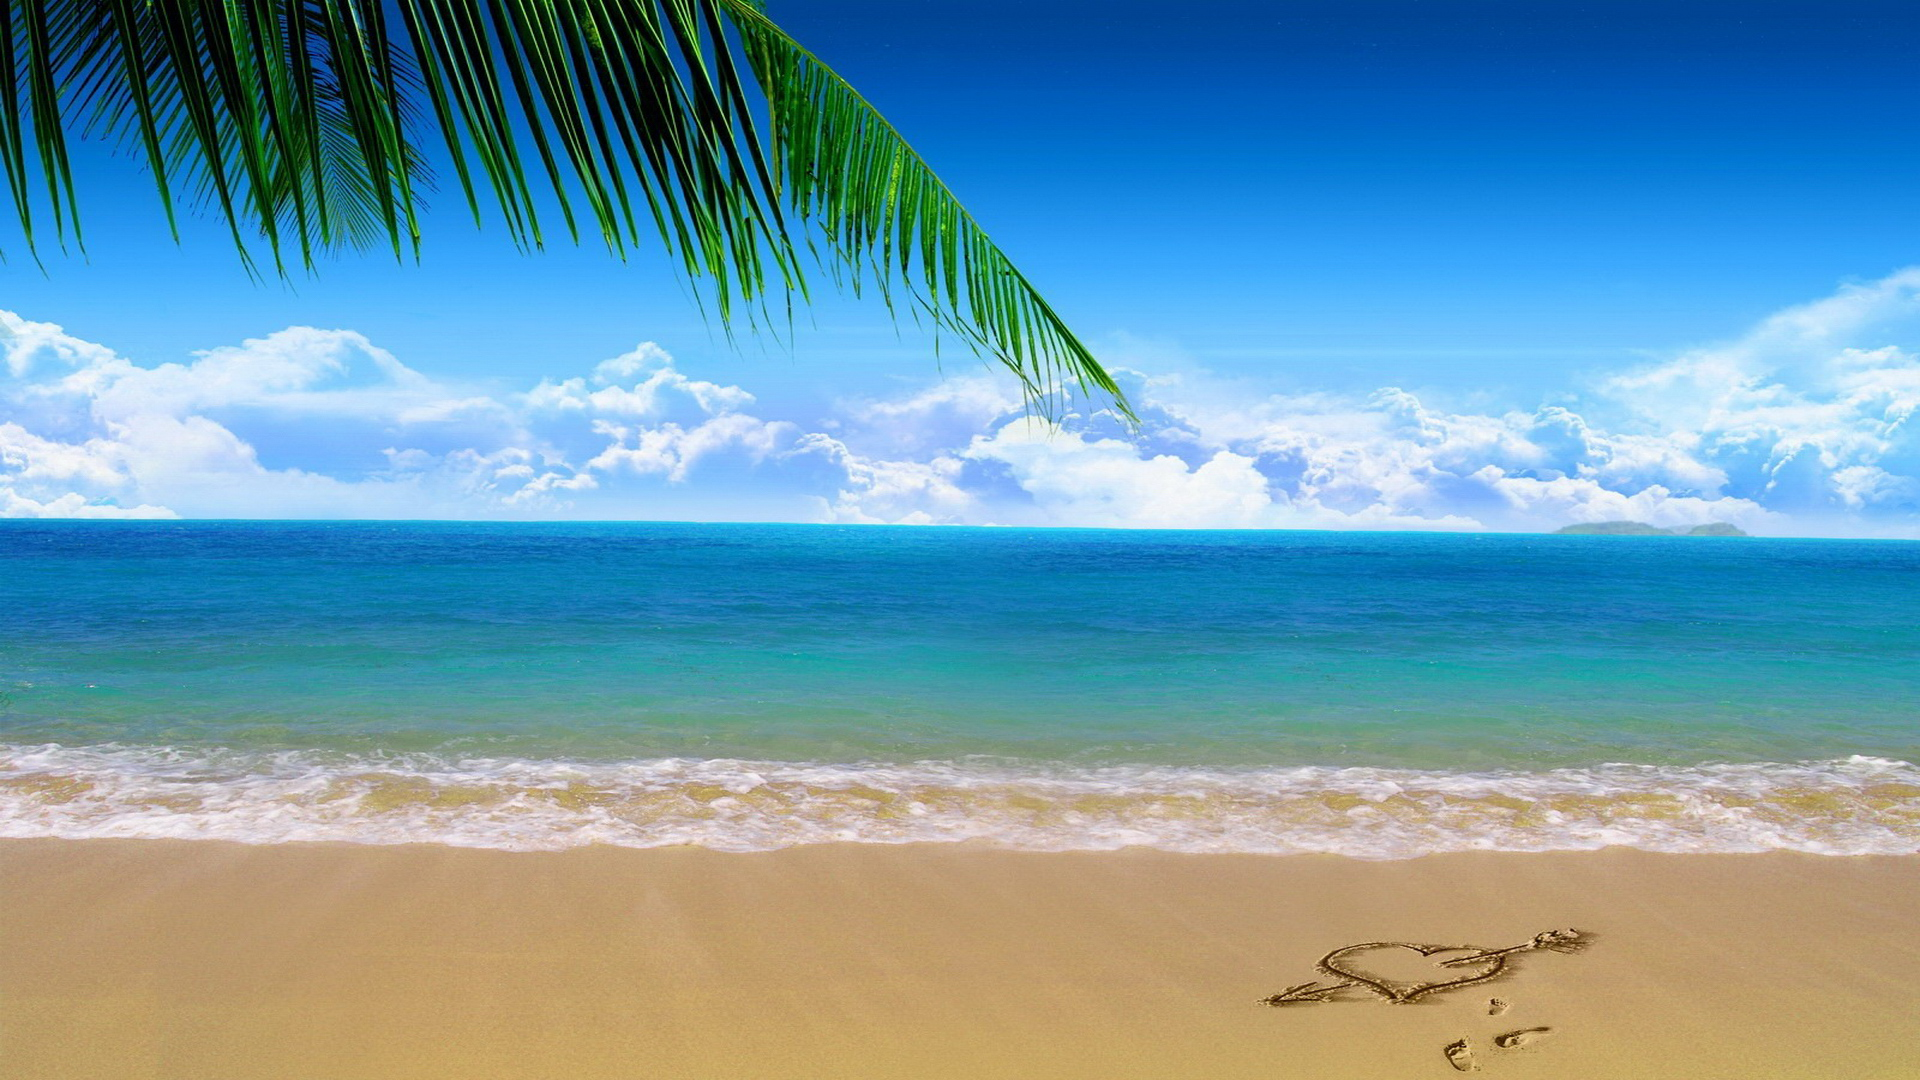 The Sea clipart beach background 2 art background pdclipart Gallery